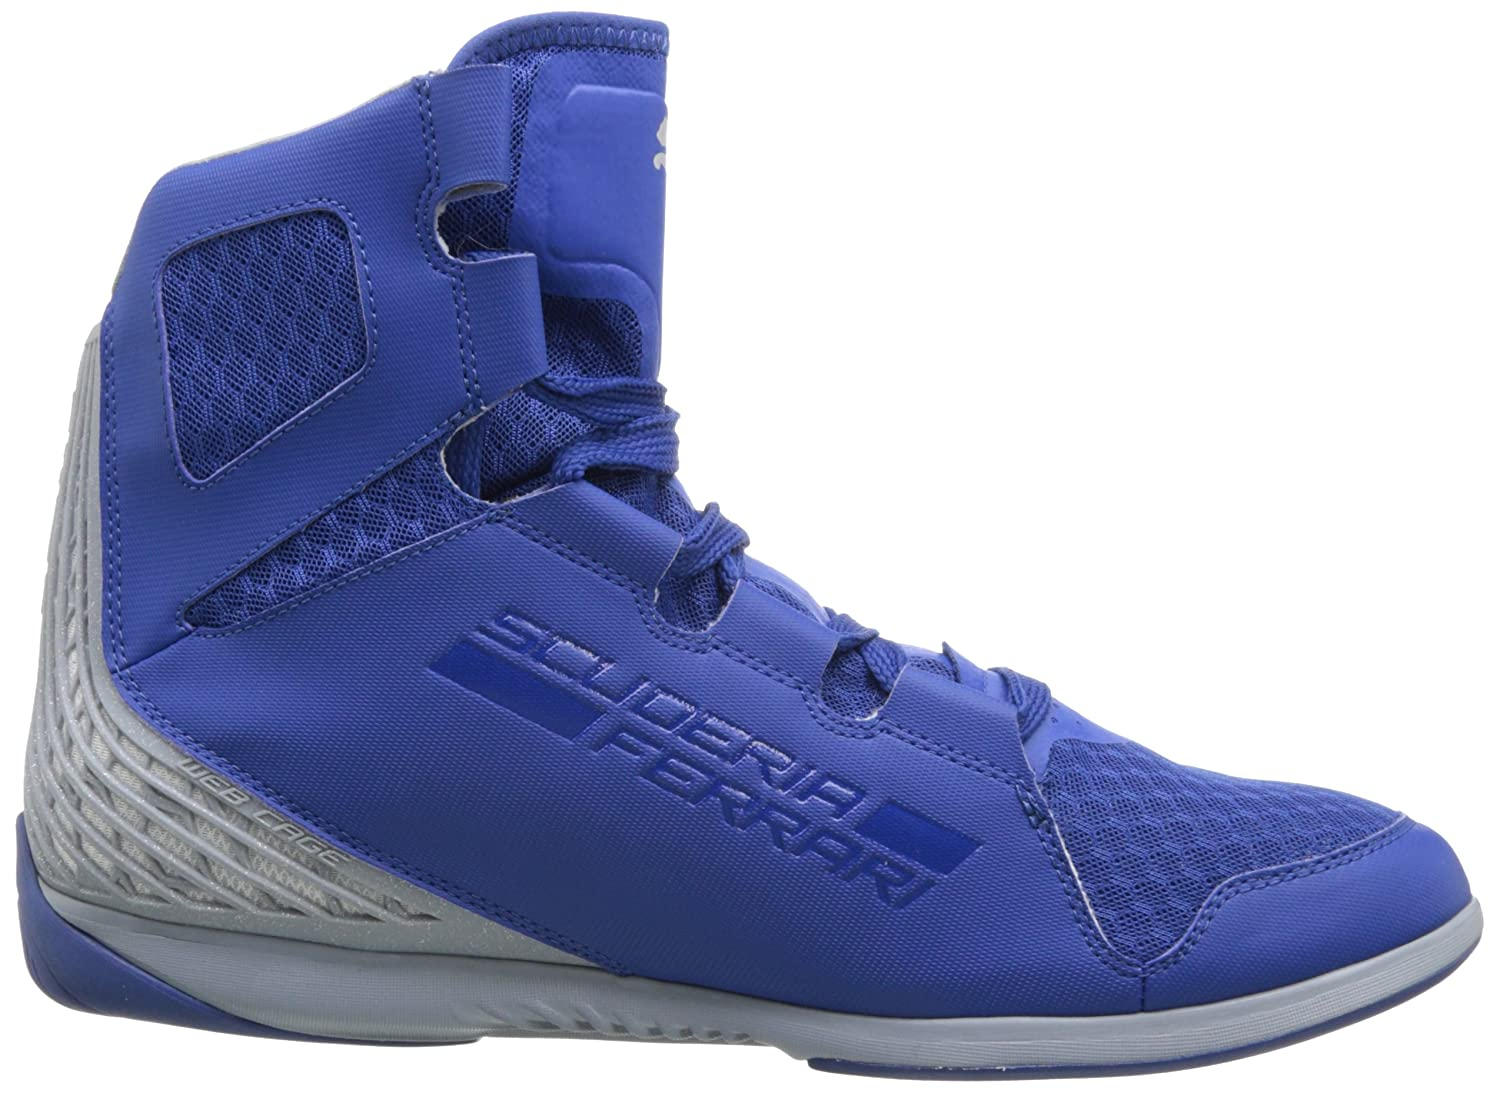 Puma Ferrari Zapatos Amazon 0gMCLRWKSl